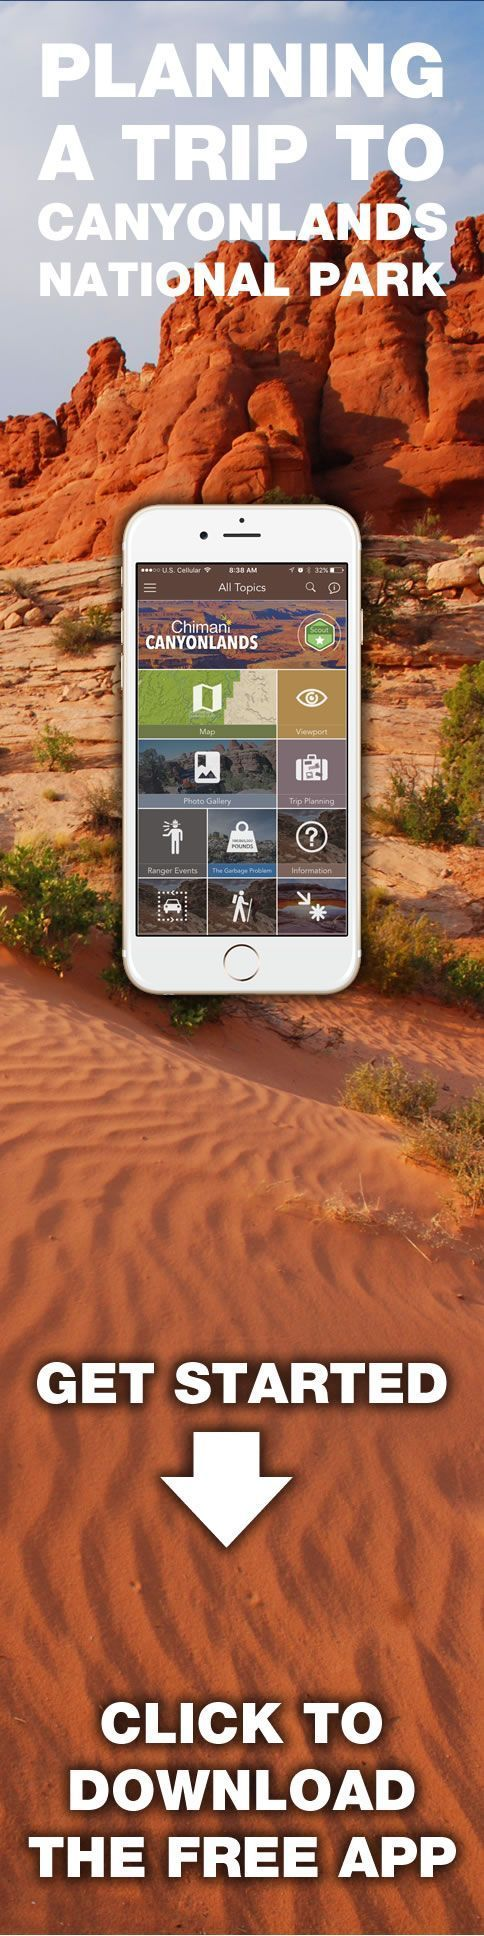 Are you planning a trip to Canyonlands National Park? Take Chimani with you! www.chimani.com/#canyonlands We develop 100% free mobile app travel guides for national parks and other outdoor destinations. No cell connection required! Download our apps for iOS and Android at www.chimani.com or in the App Store or on Google Play #TravelDestinationsUsaAndroid #TravelDestinationsUsaGooglePlay